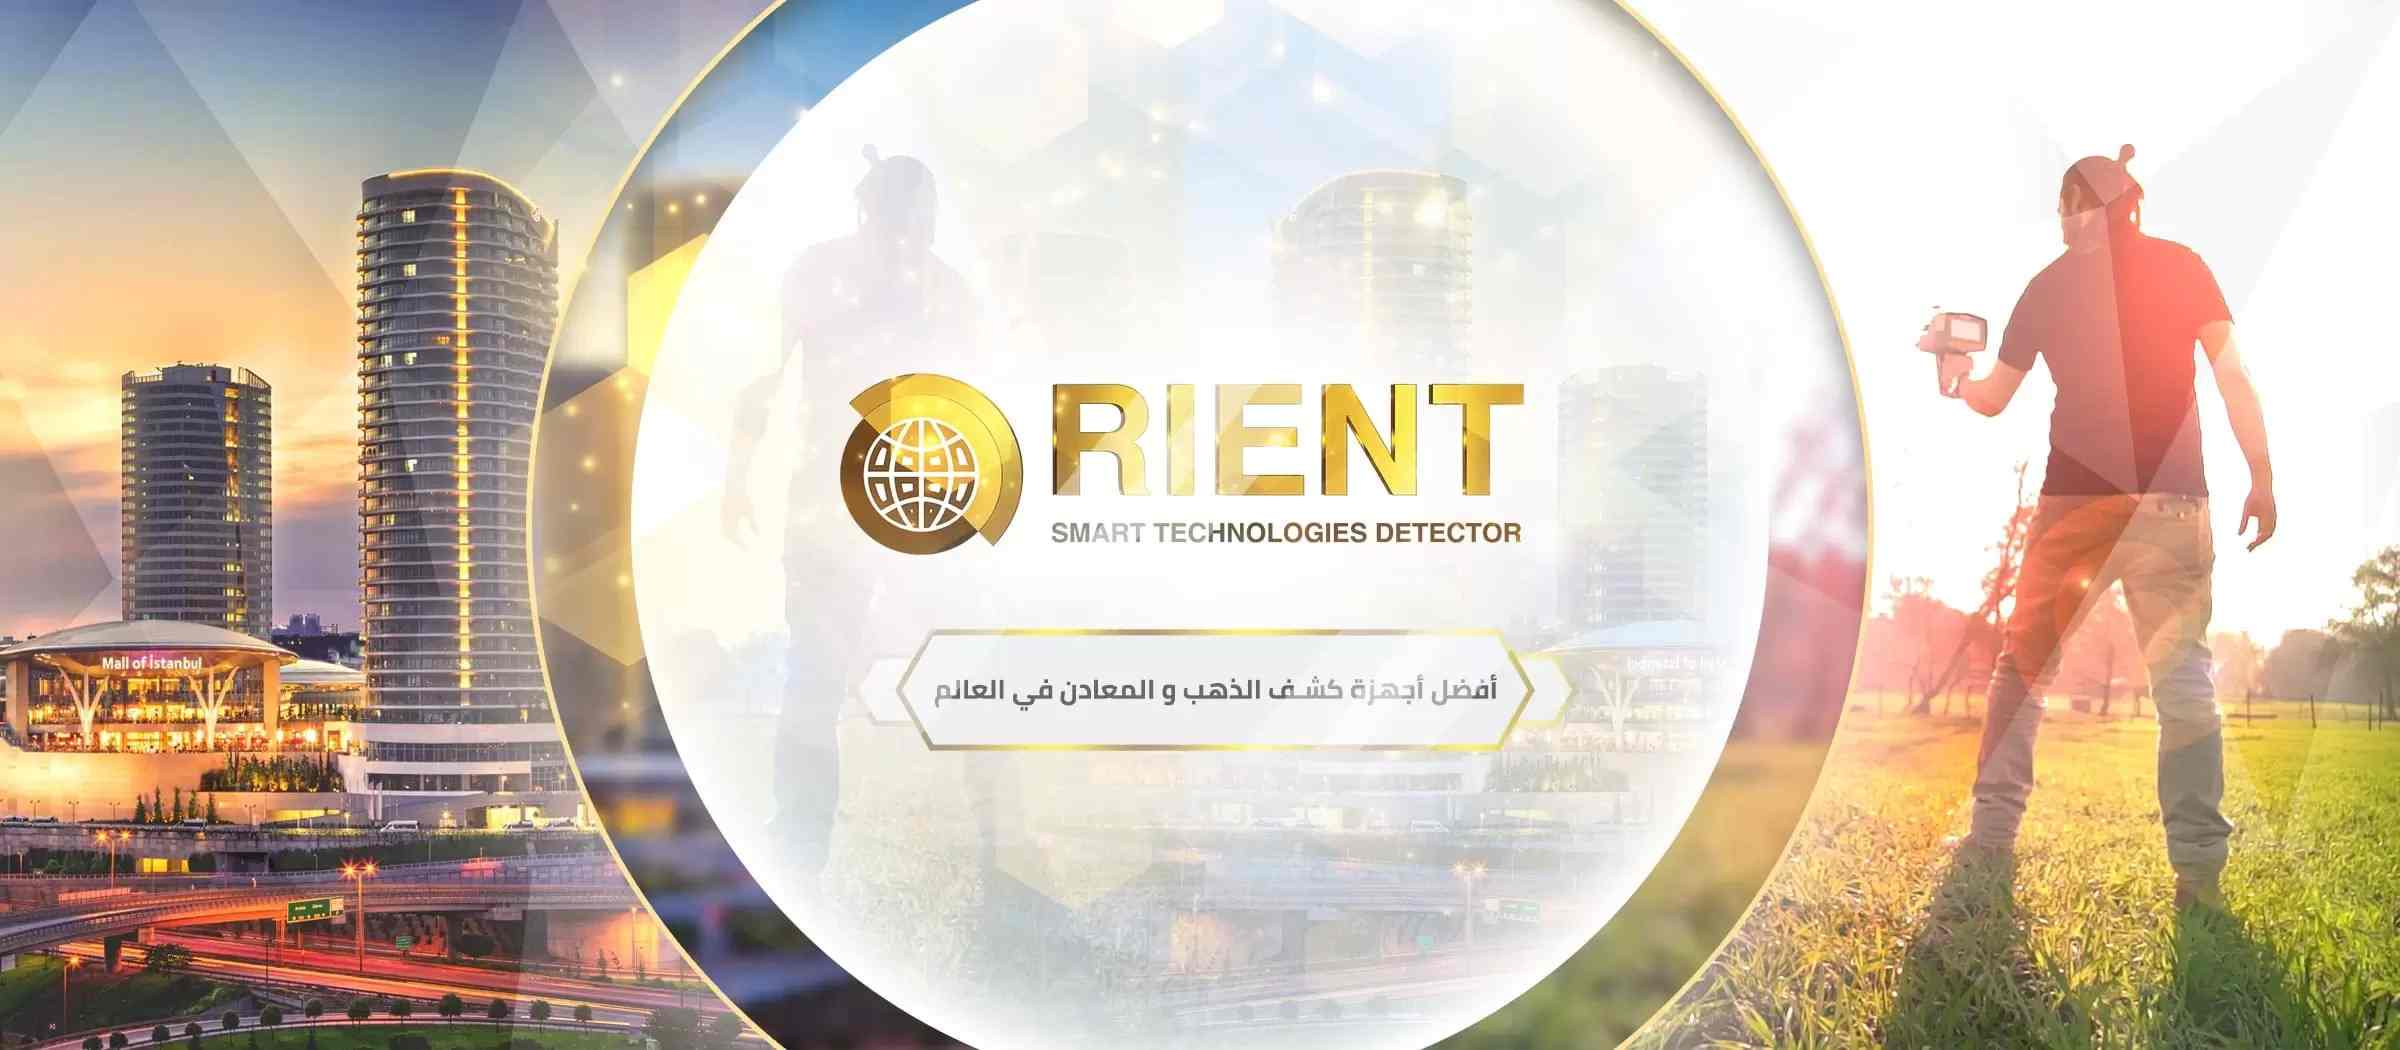 orient-technology-group